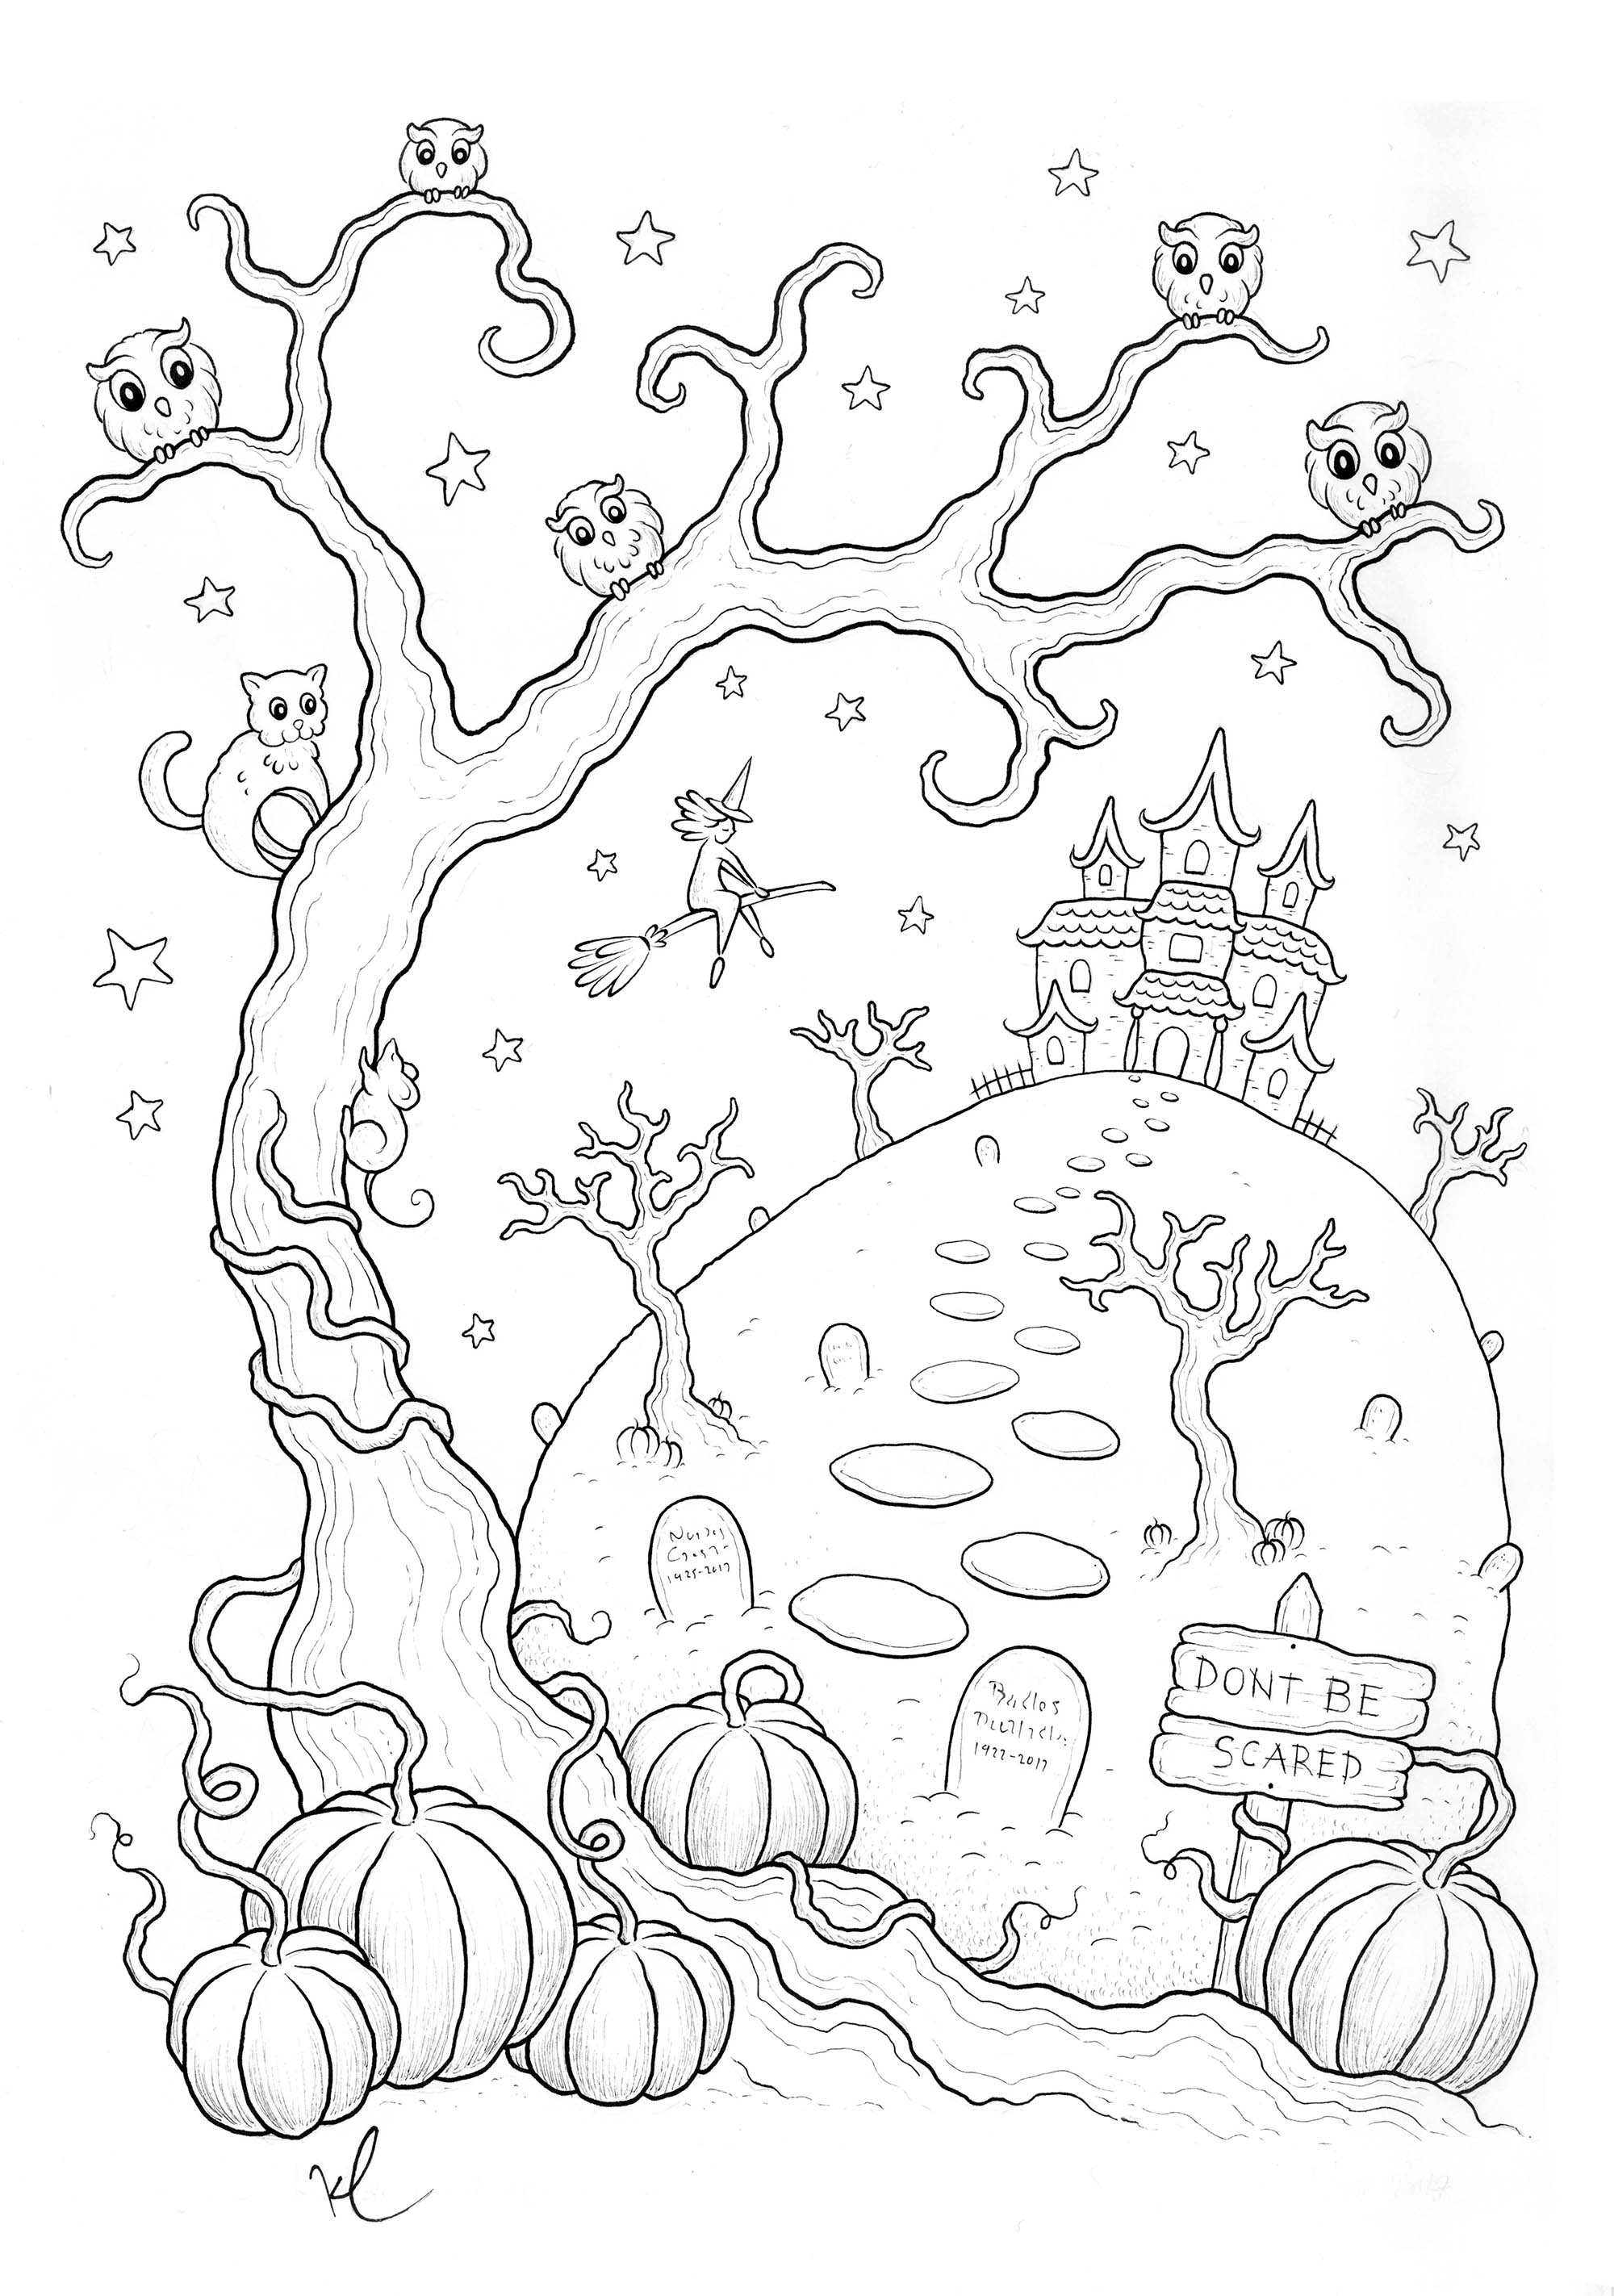 Disegni da colorare per adulti : Halloween - 51